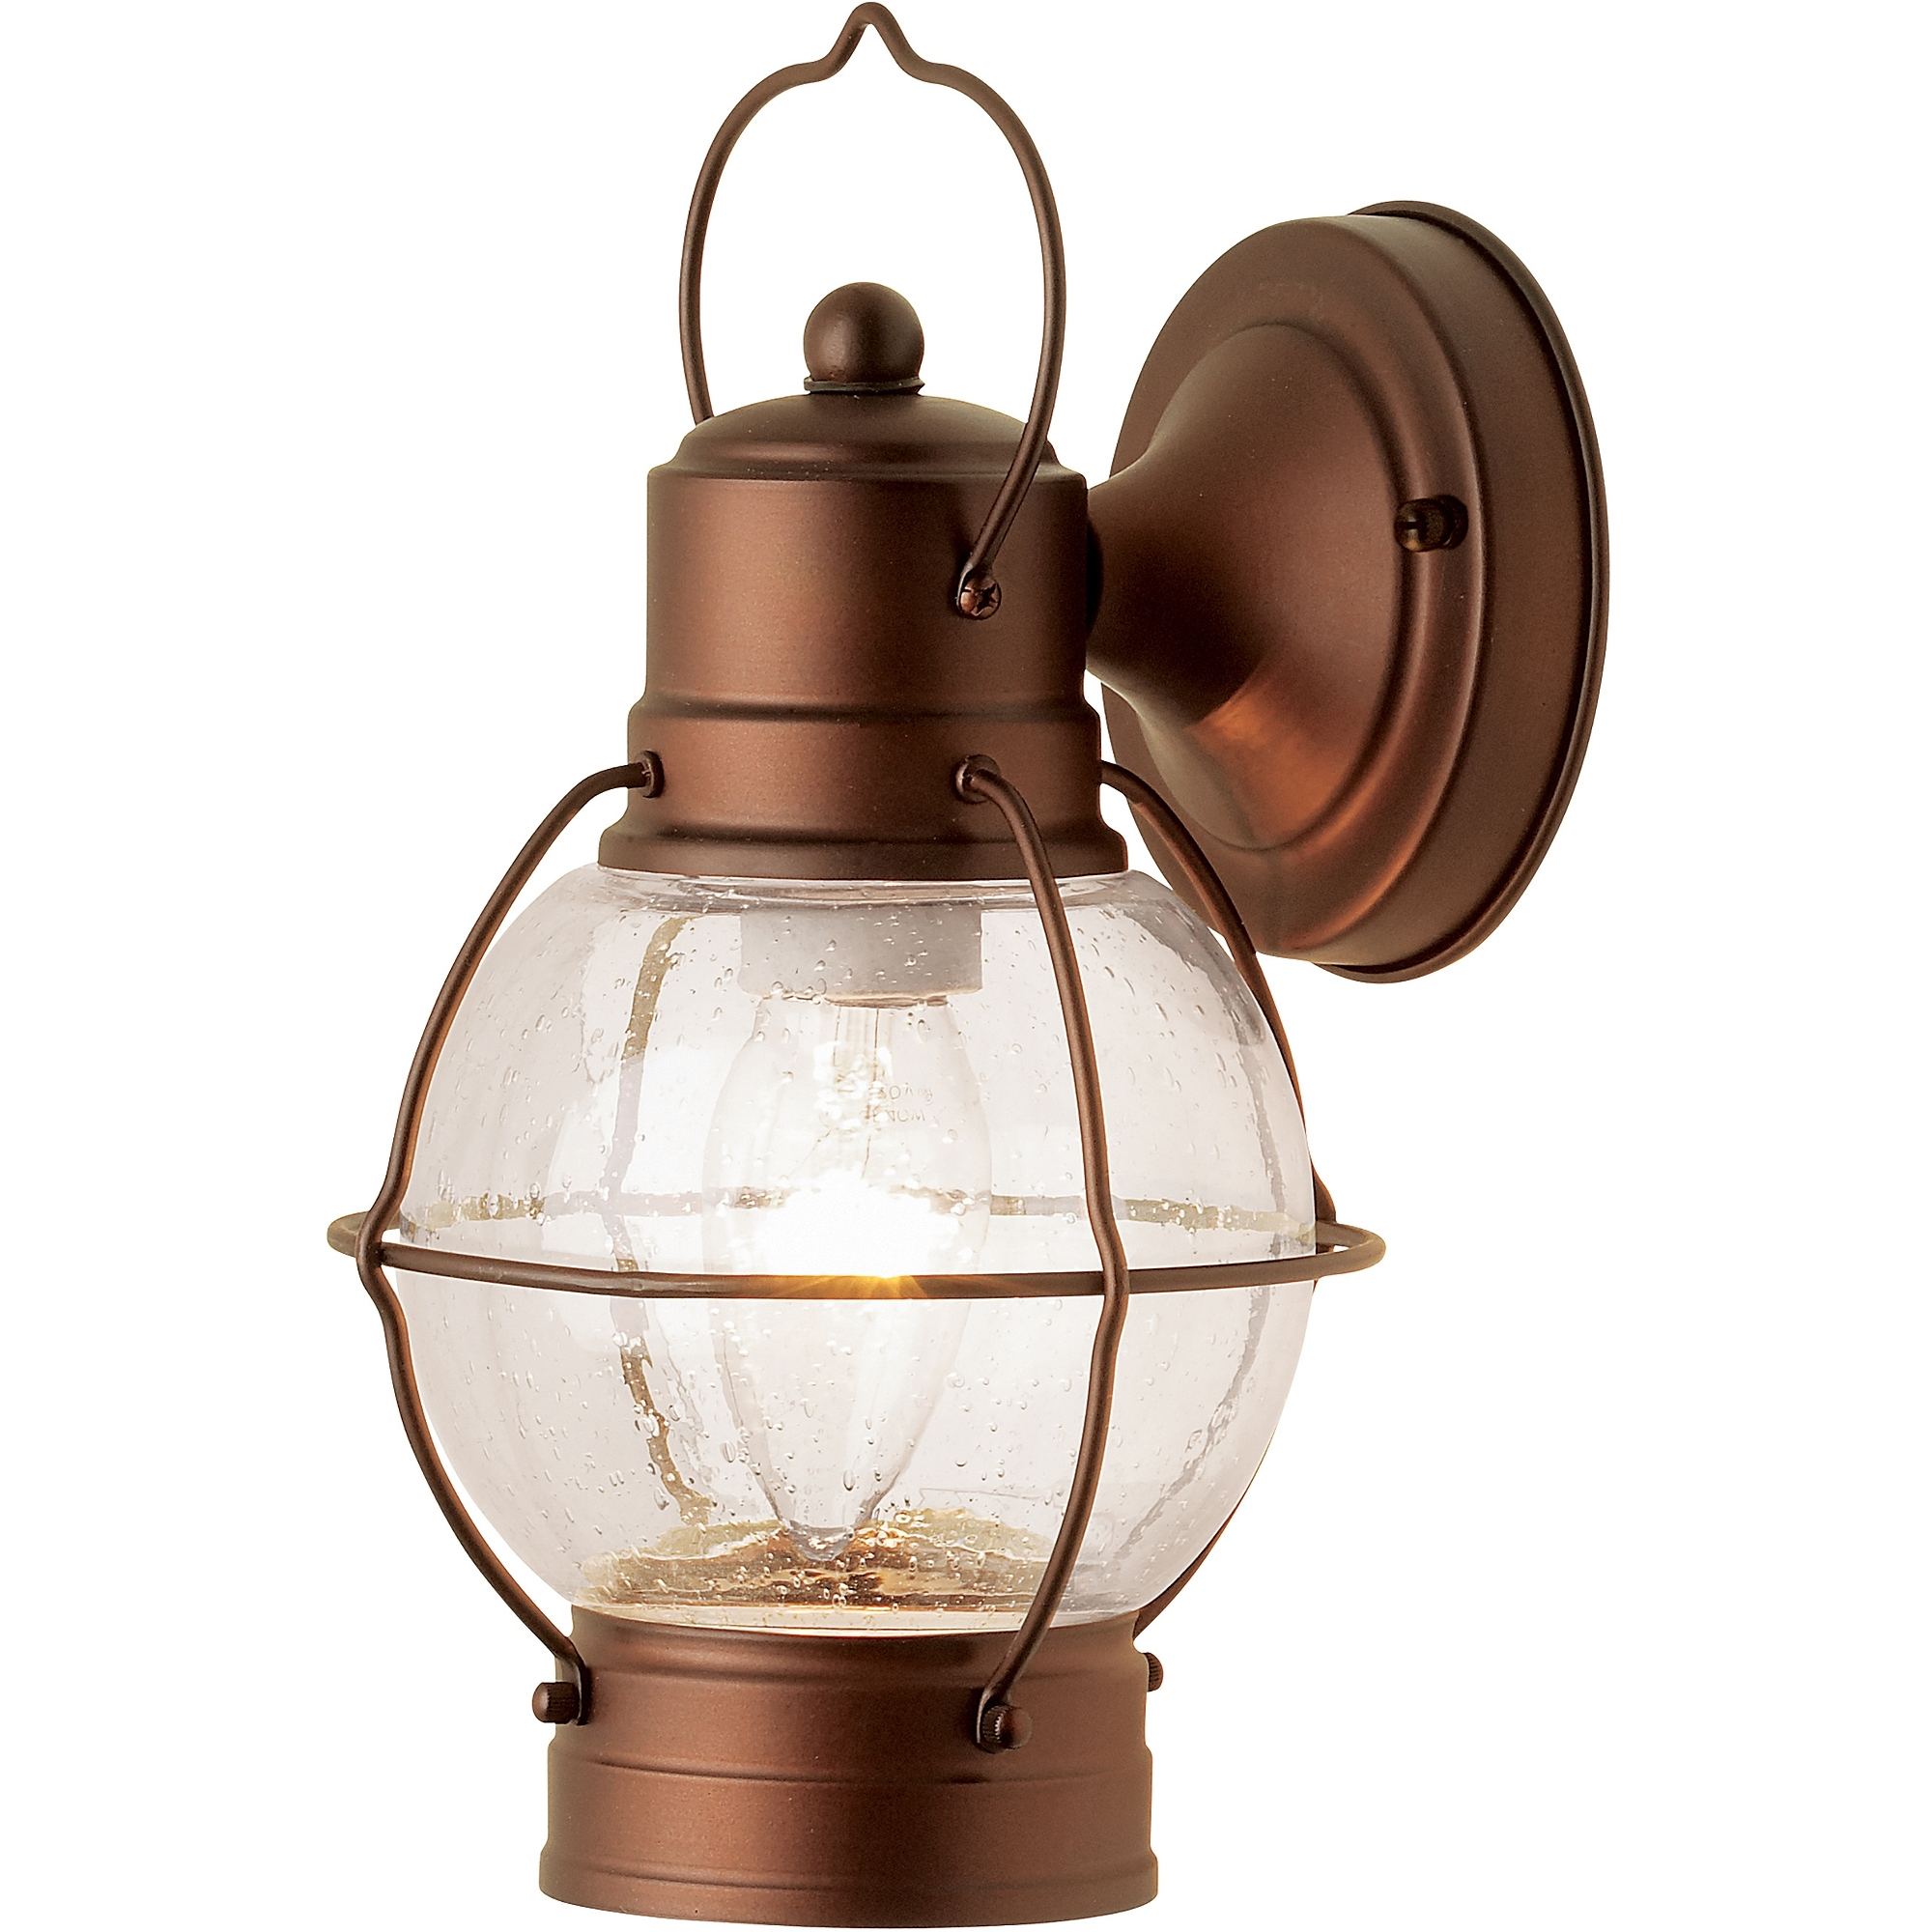 2018 Hampton Rustico Lantern, Outdoor Lighting, Aged Bronze – Walmart With Regard To Outdoor Lighting Onion Lanterns (View 1 of 20)